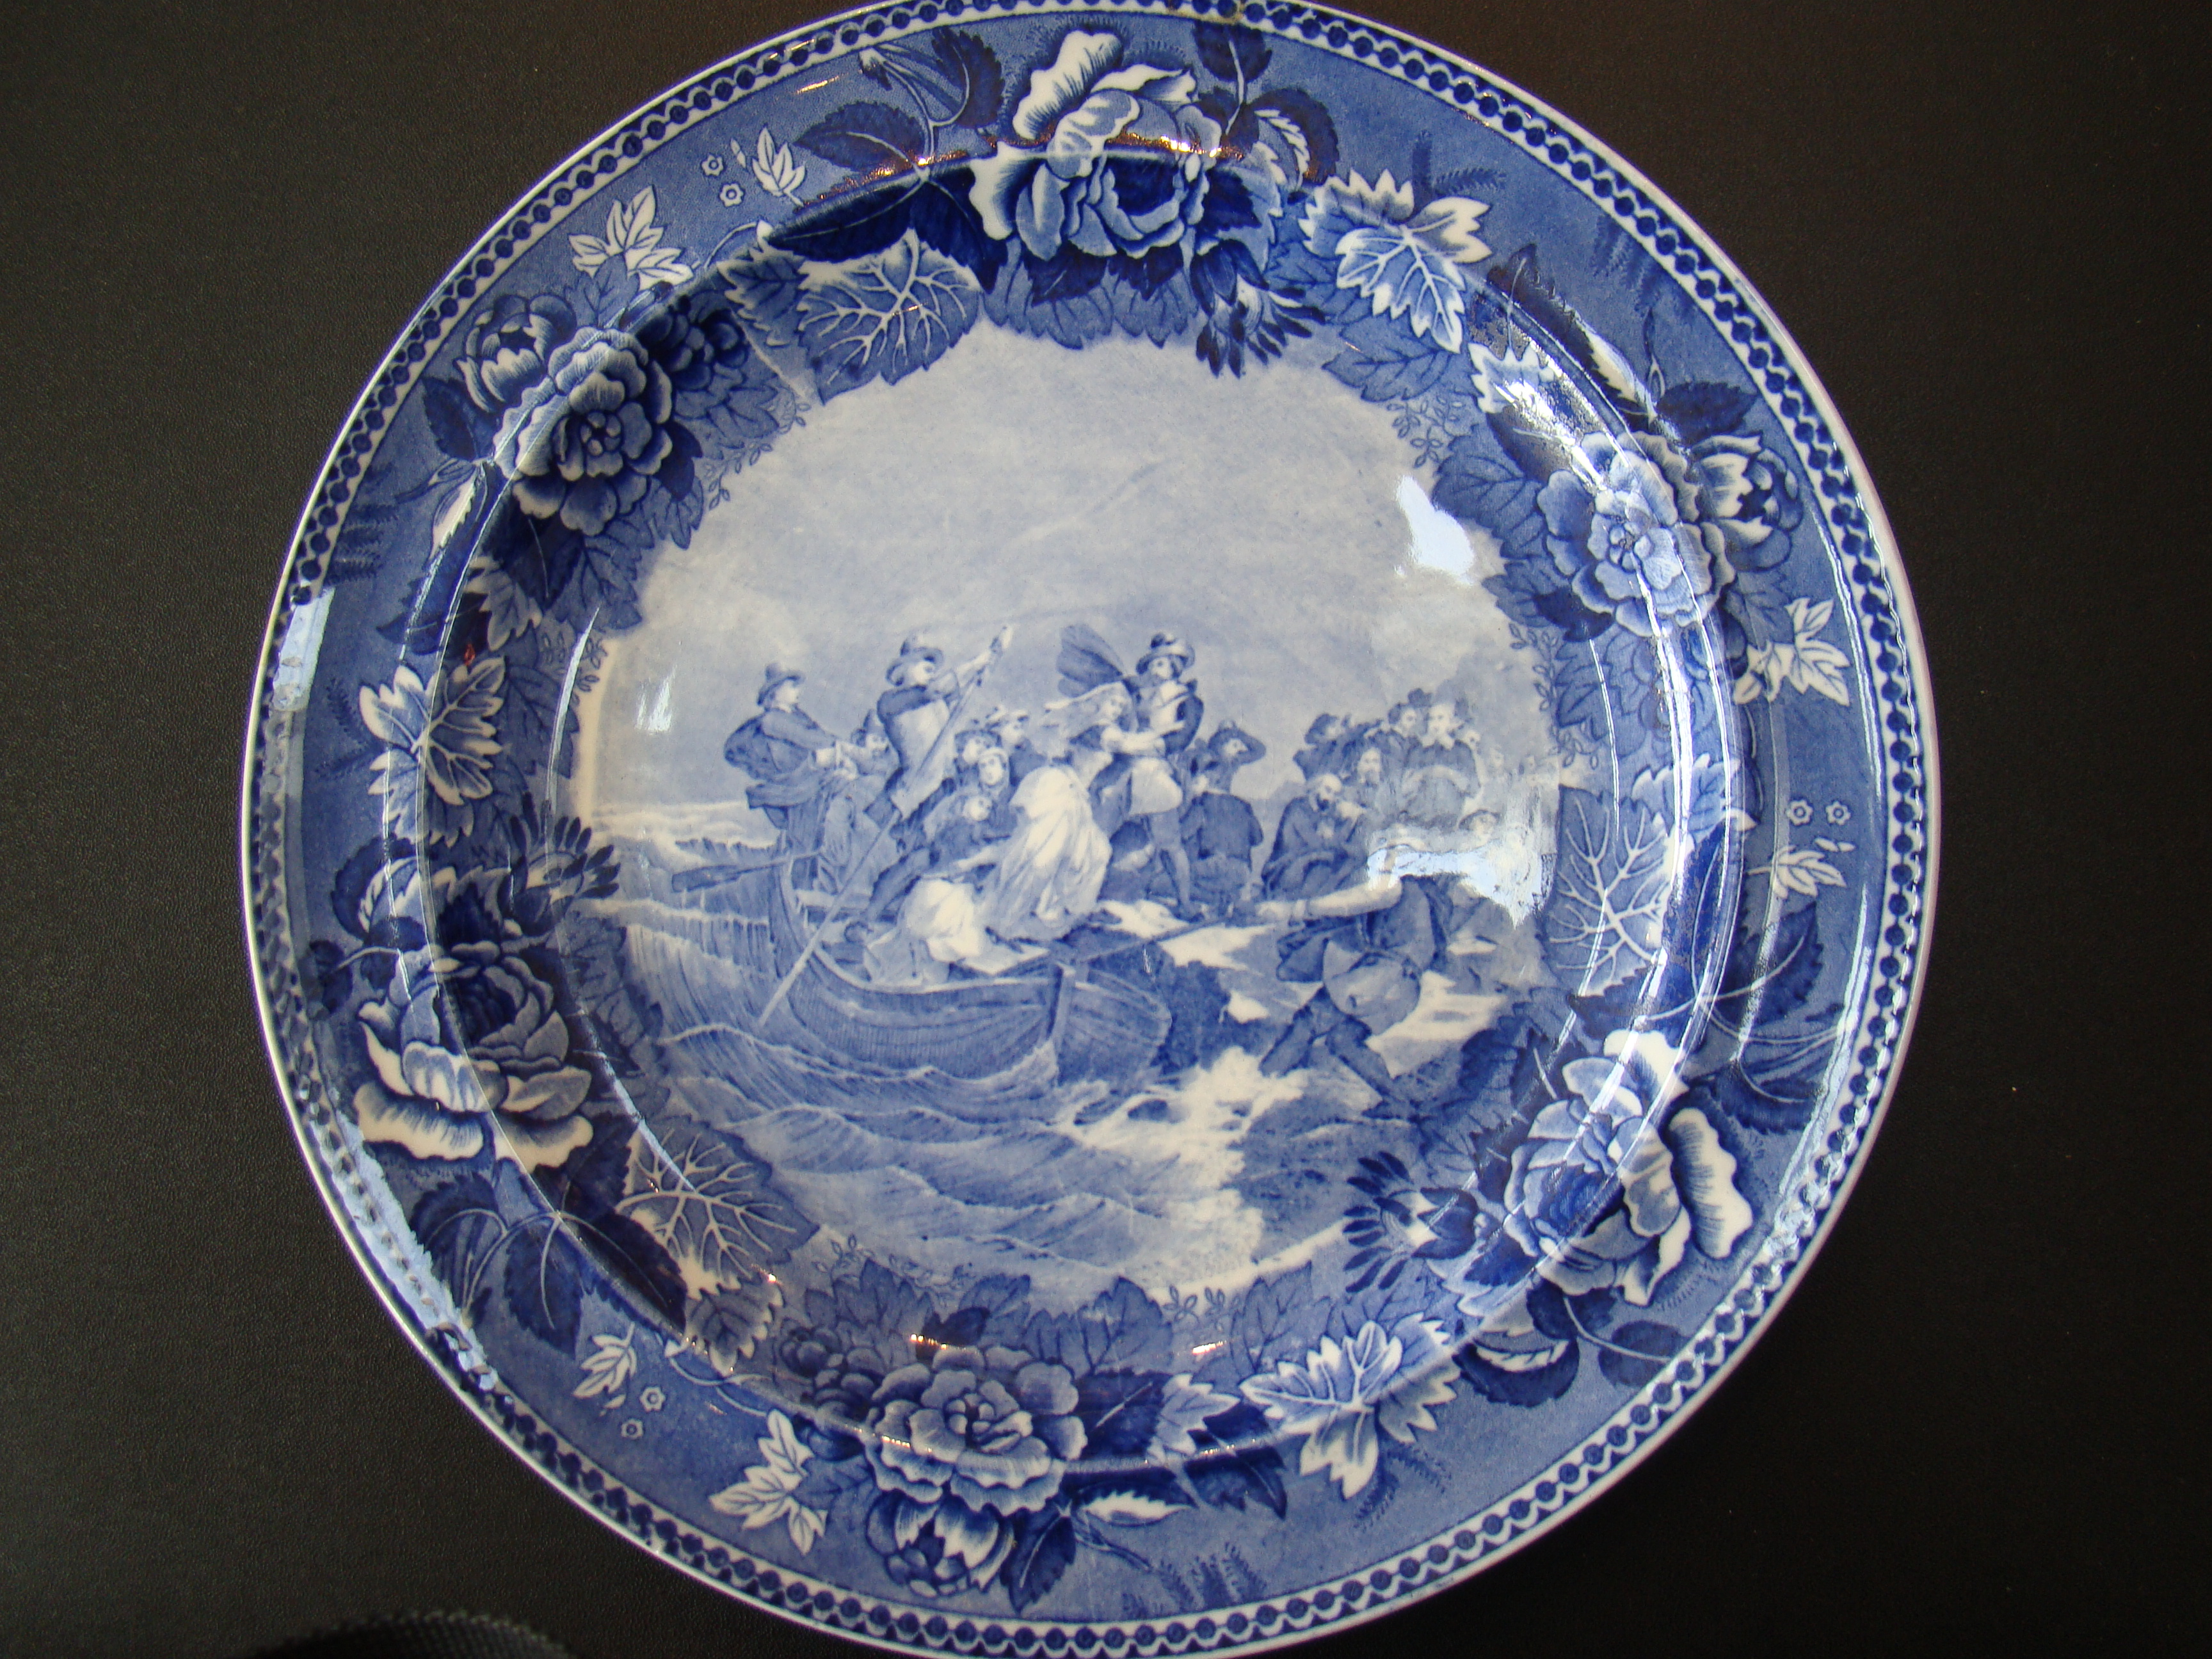 click to view detailed description of The Landing of the Pilgrims made by Wedgwood in 1899